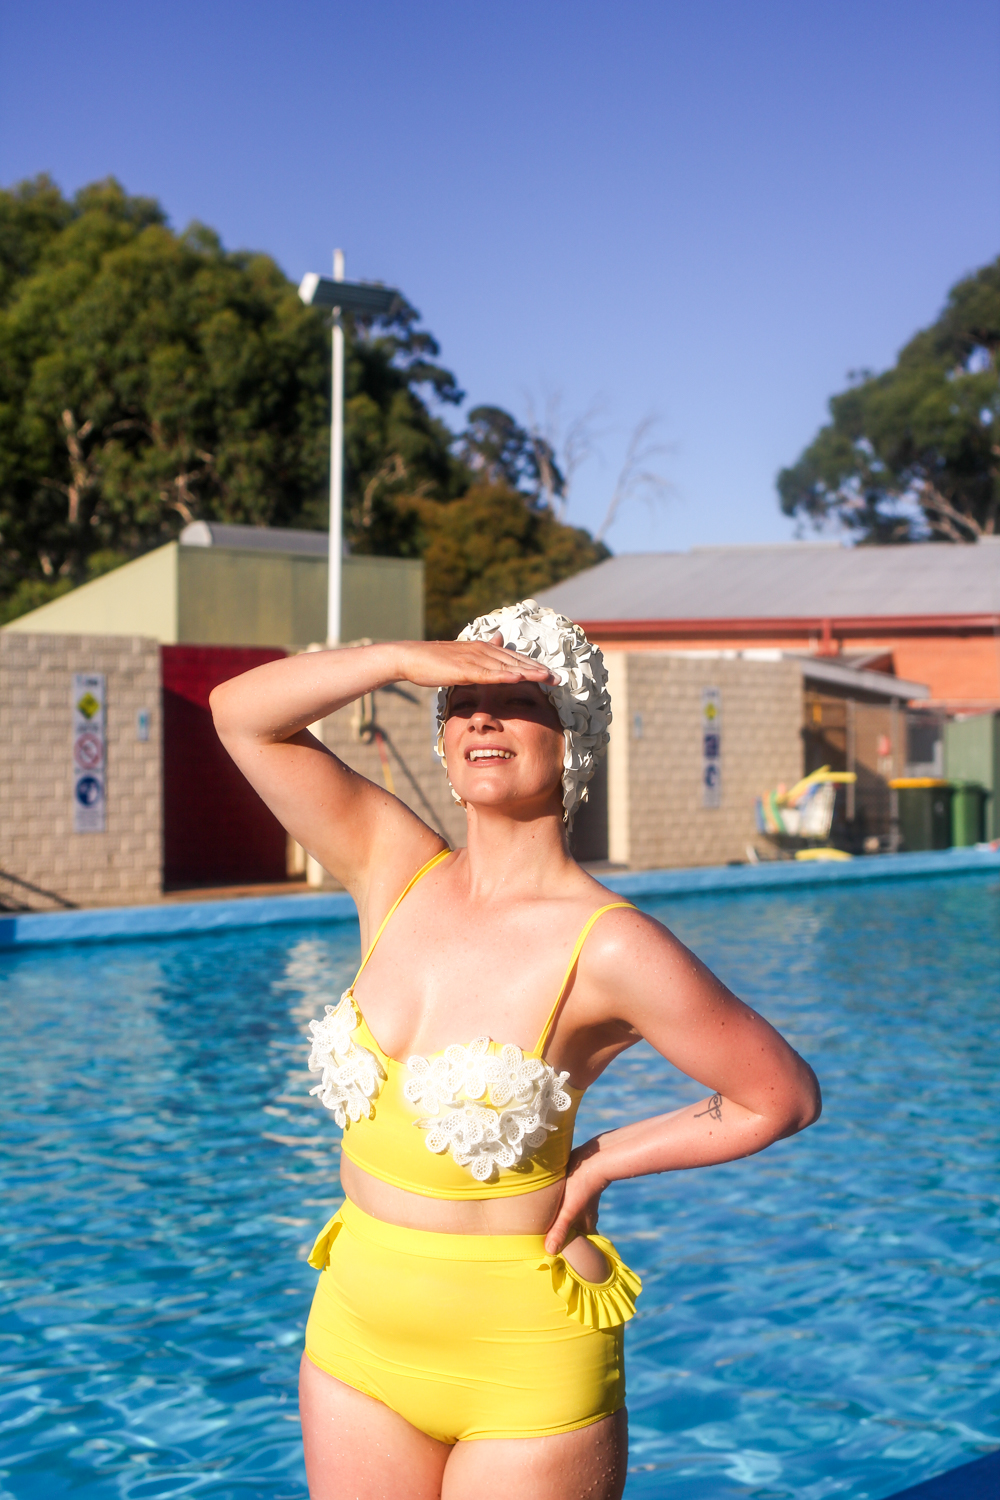 Liana of @findingfemme wears a yellow and white vintage bikini with a white floral swimming cap